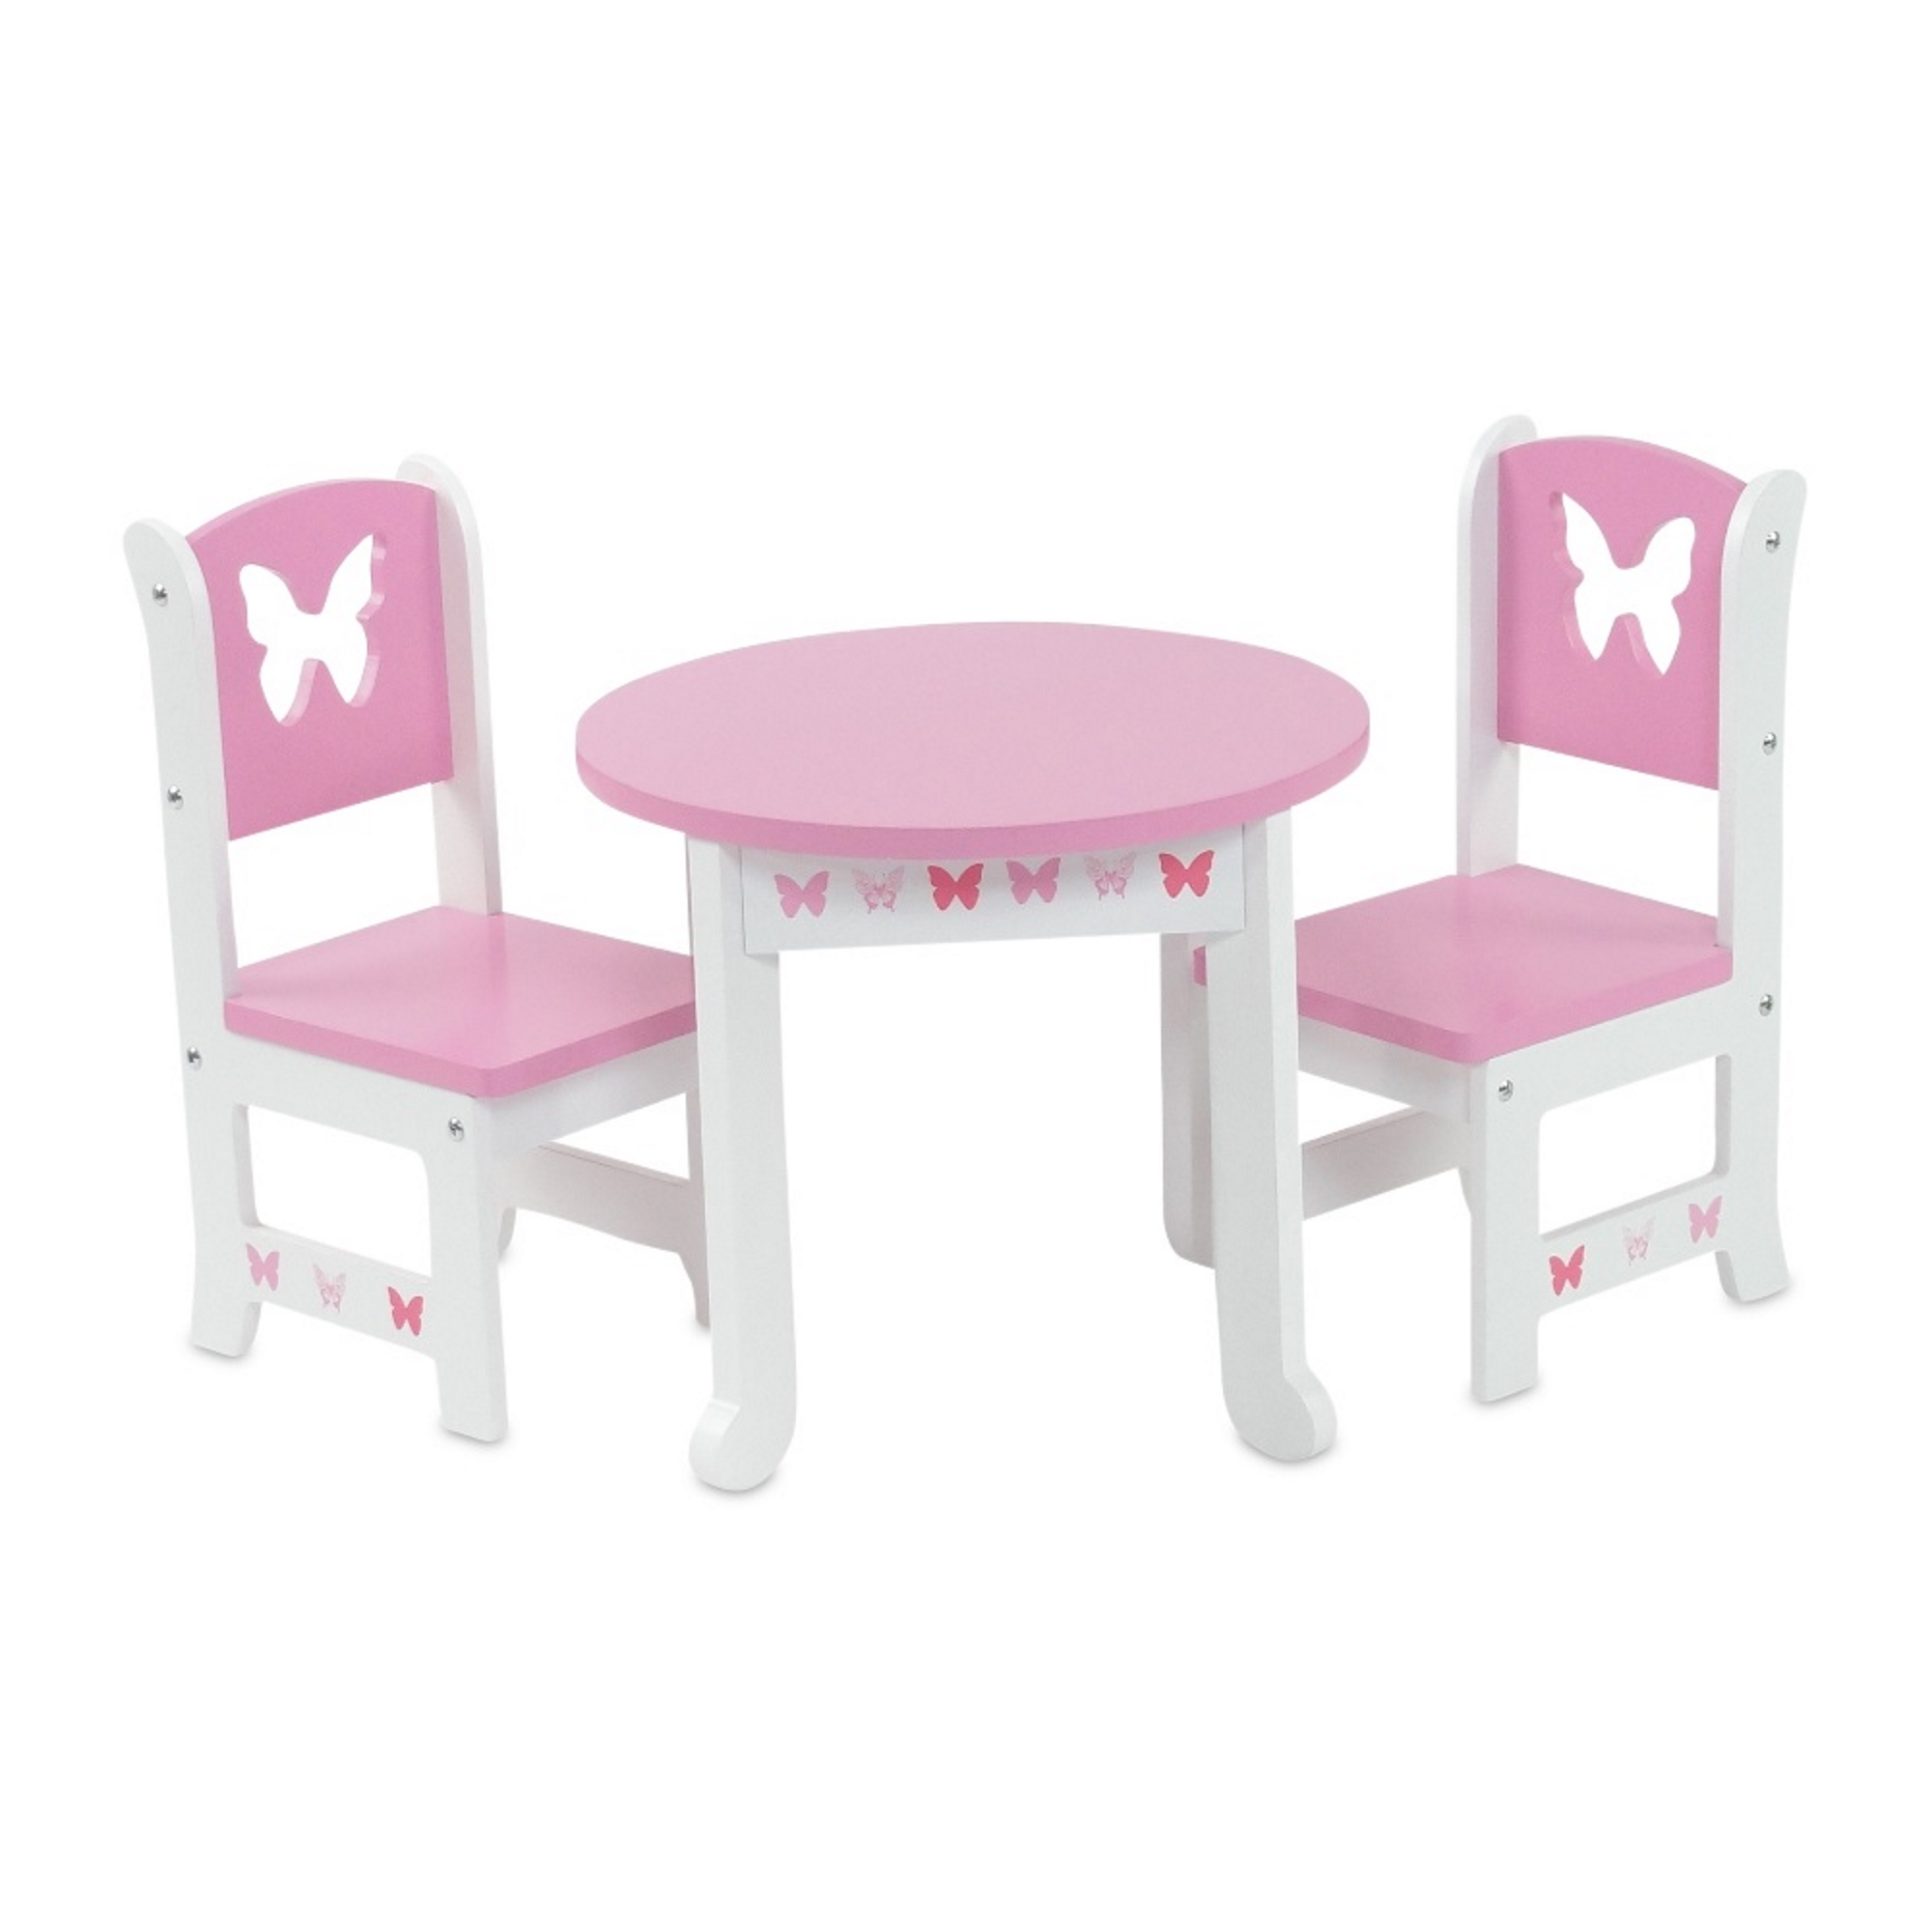 american girl doll chairs customized directors chair covers 18 inch furniture lovely pink and white table 2 dining set with beautiful butterfly motif fits dolls walmart com